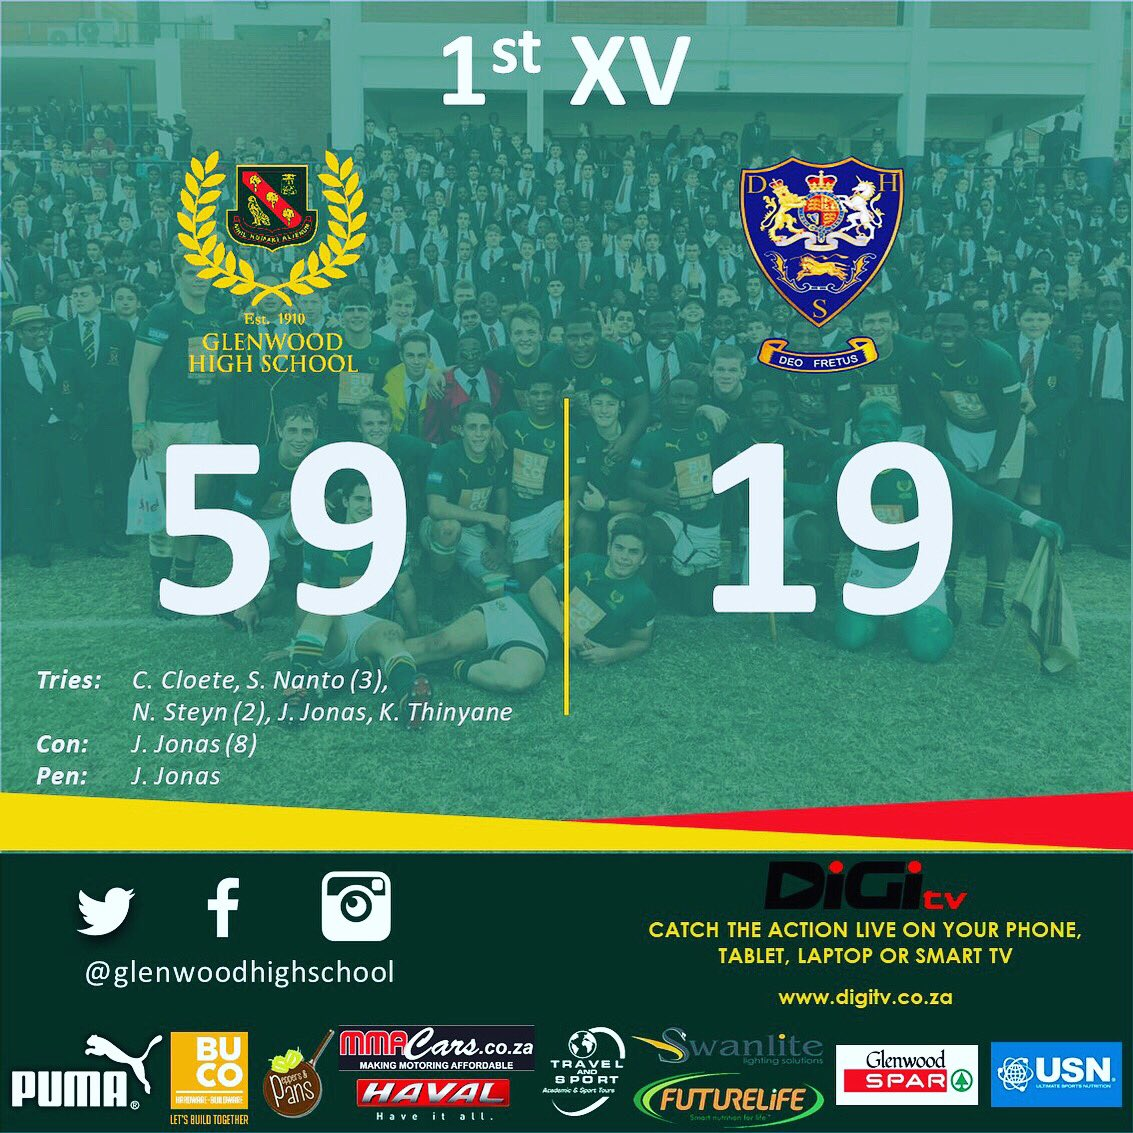 D7-9UzzXoAAAgrR School of Rugby | Craven Week Springboks  - School of Rugby